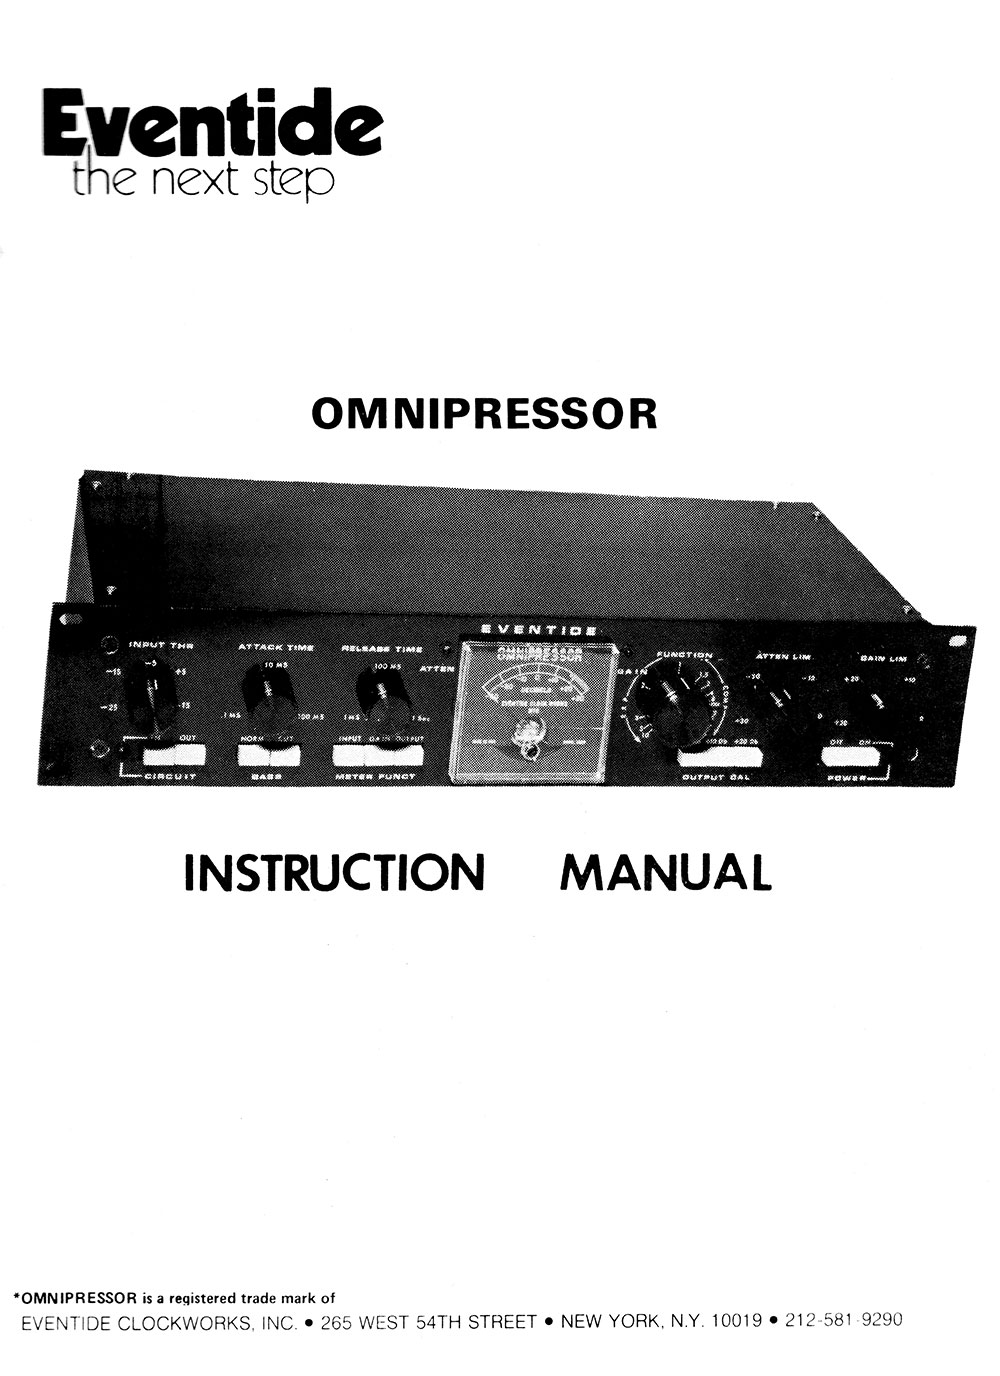 Omnipressor Instruction Manual Cover